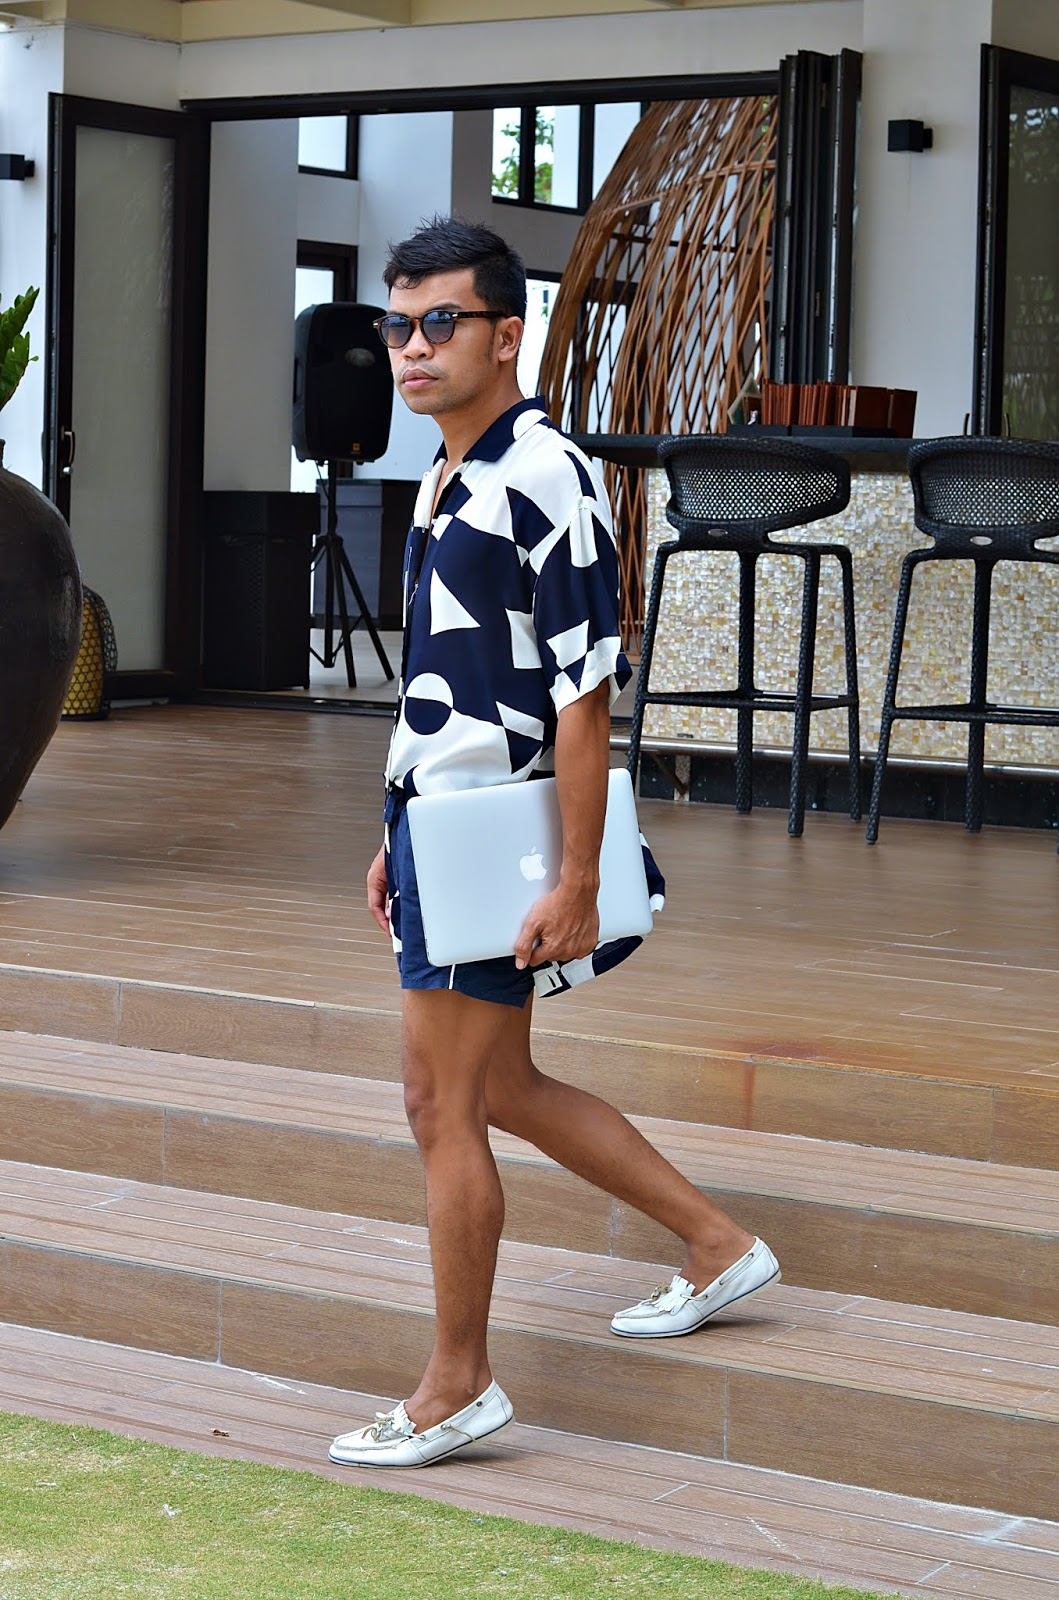 BLOGGER-FASHION-MEN-CEBU-ALMOSTABLOGGER.jpg